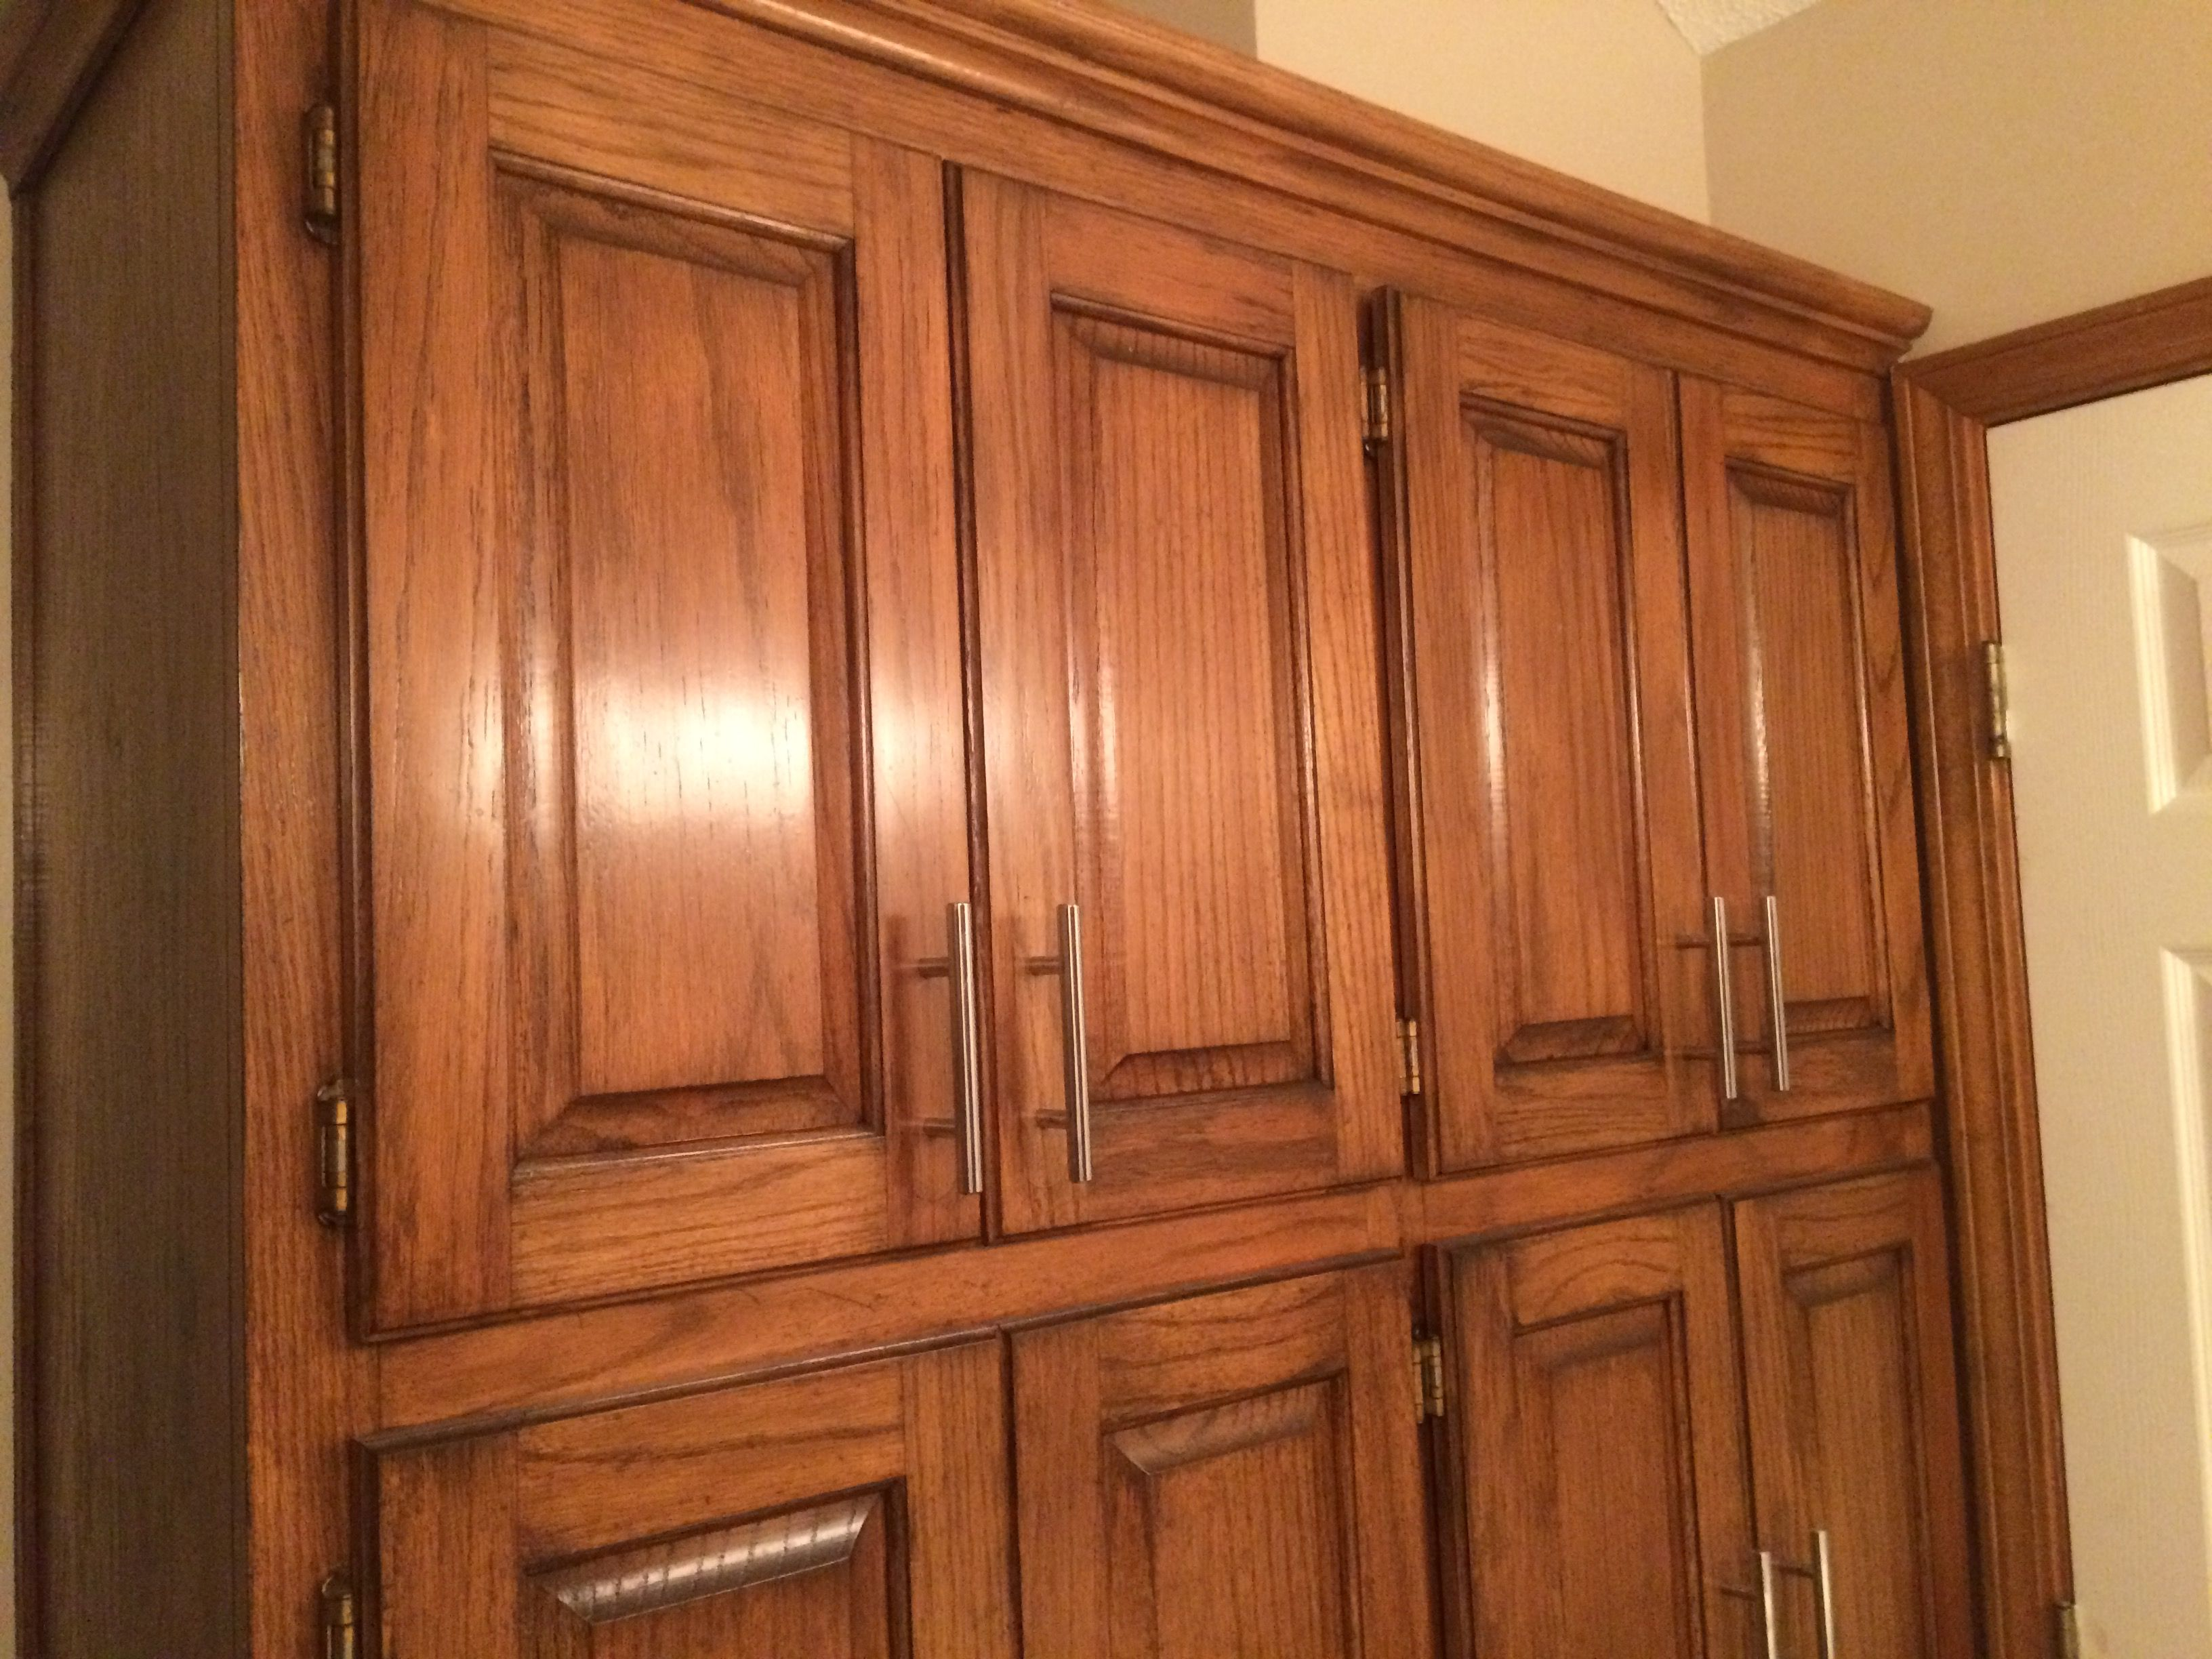 Staining Oak Cabinets Espresso 25 Best Ideas About Staining Oak Cabinets On Pinterest Oak